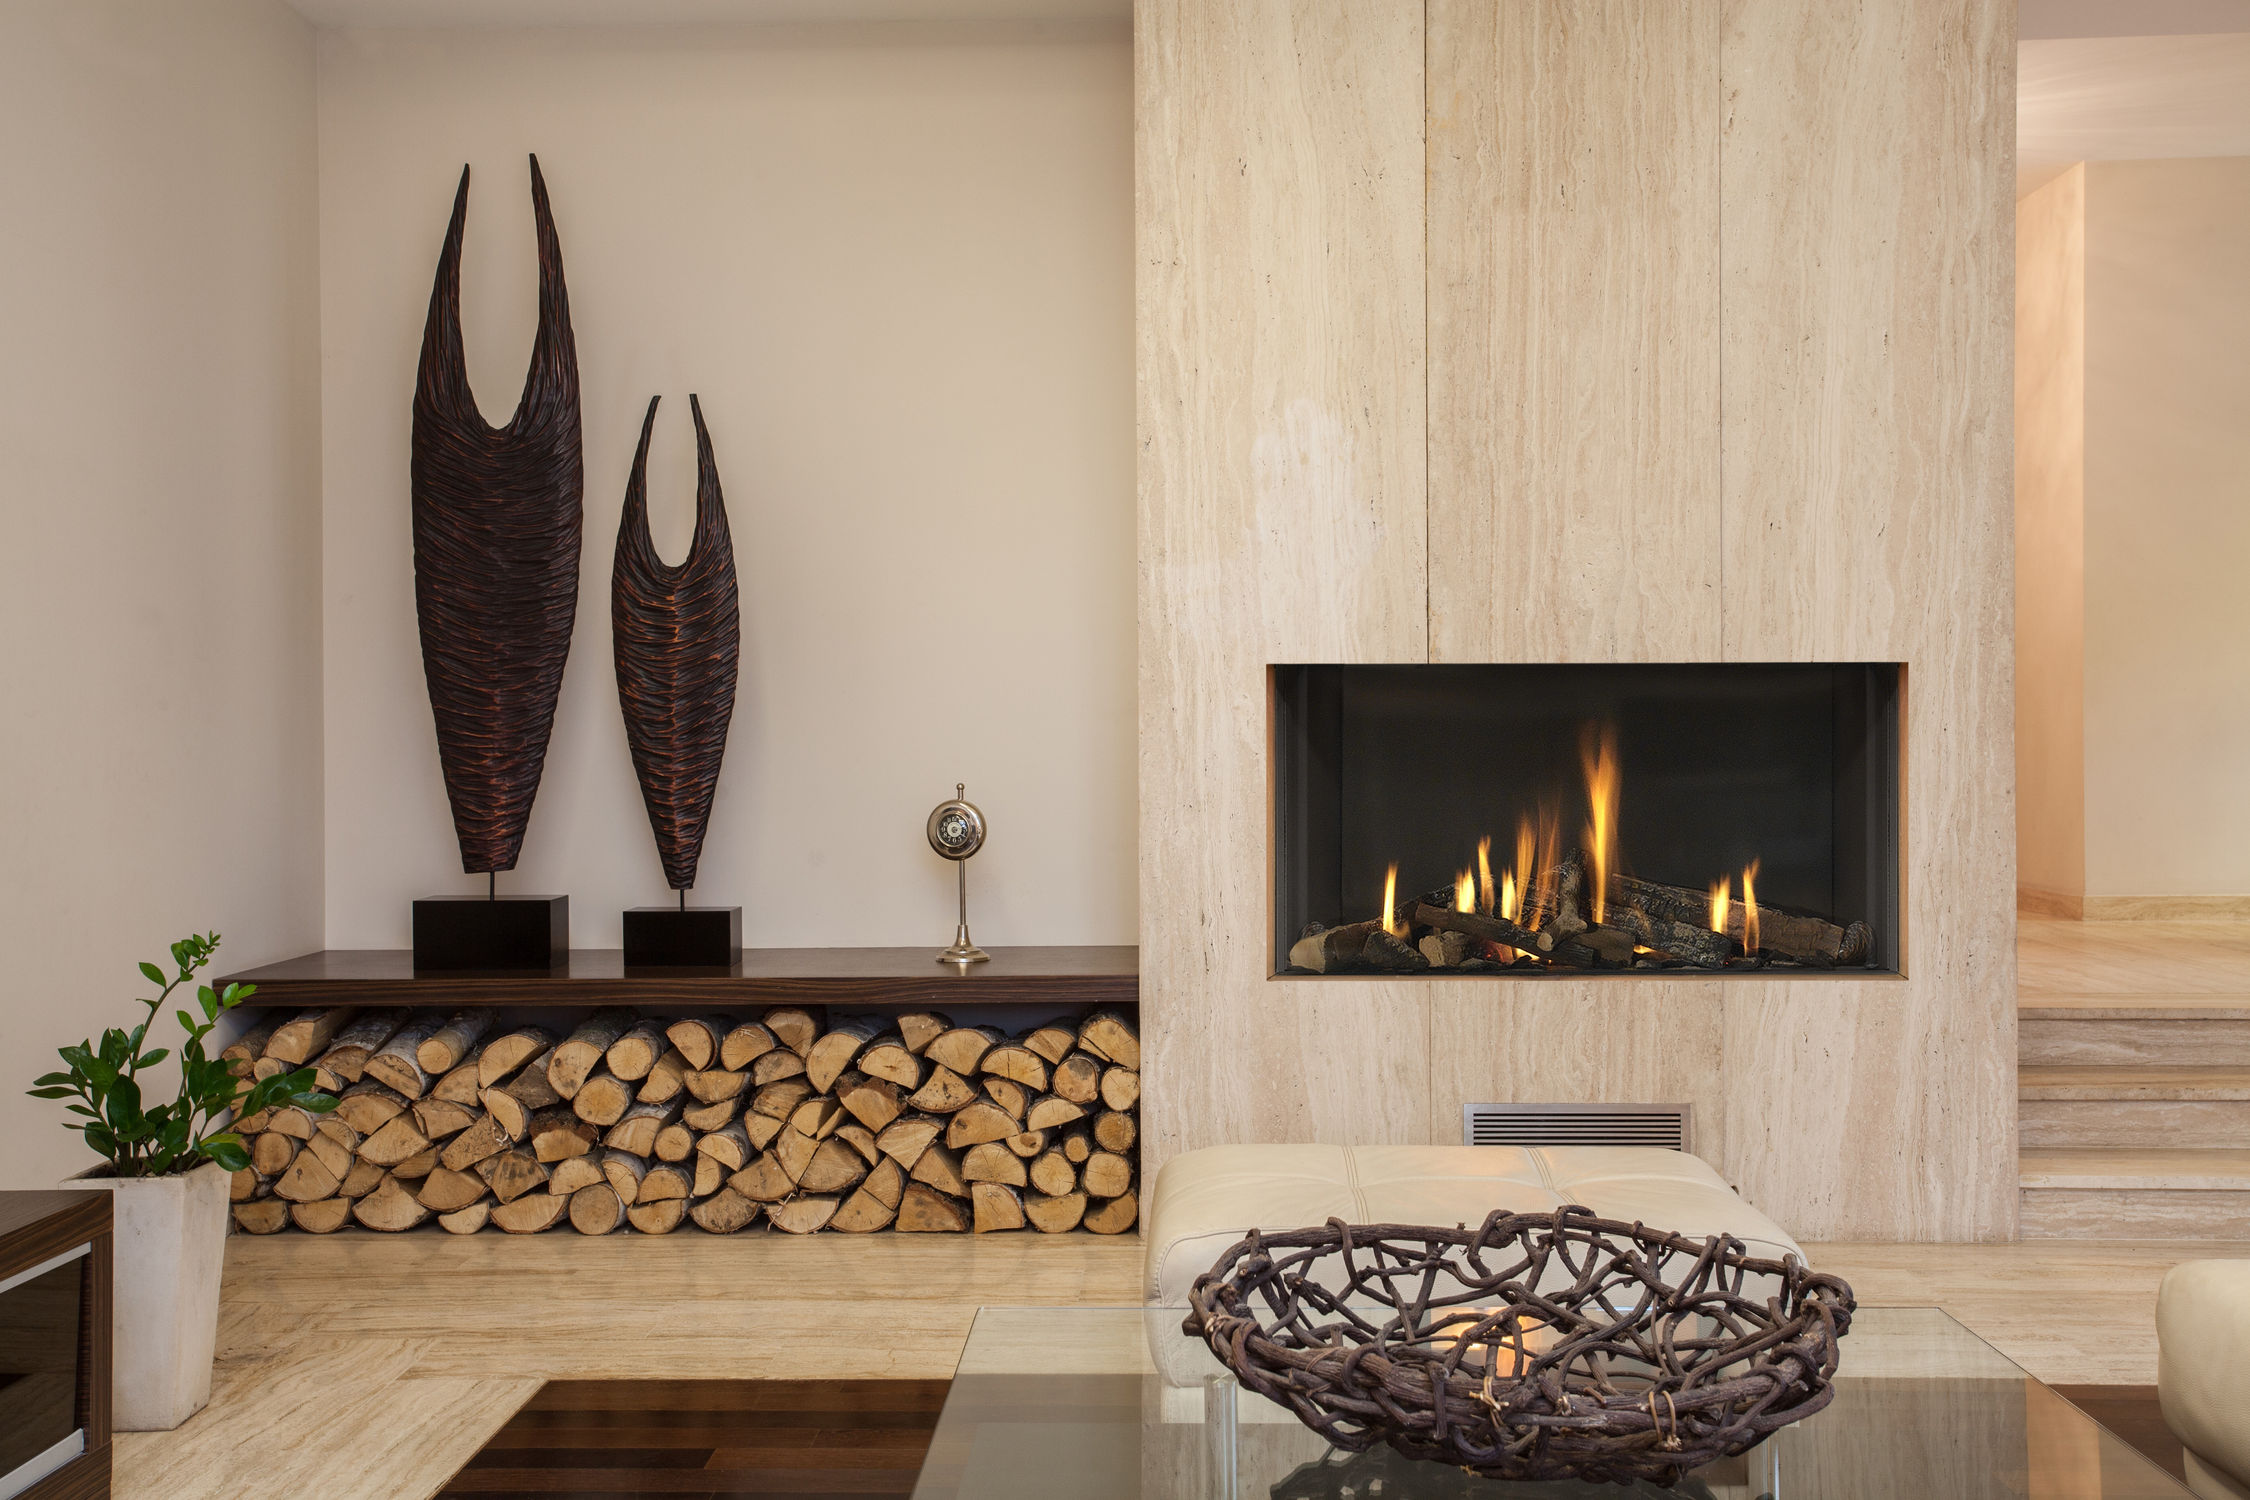 10 wood paneled column - Fireplace Design Idea